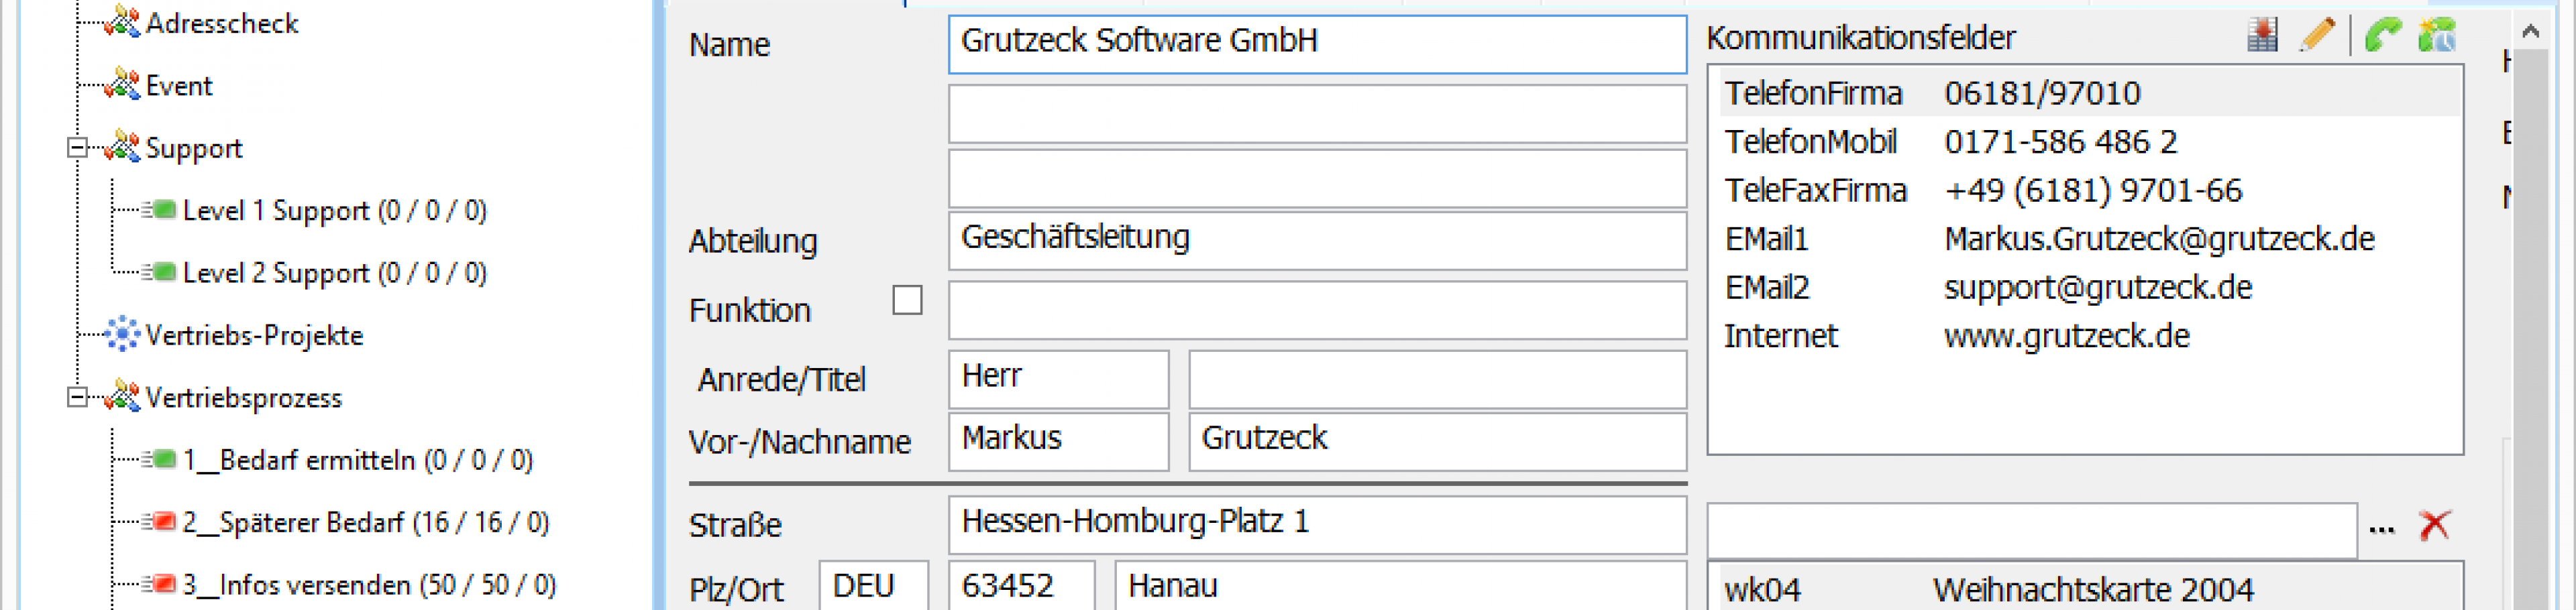 CRM Software AG-VIP SQL: neue oberflaeche touch 125 prozent